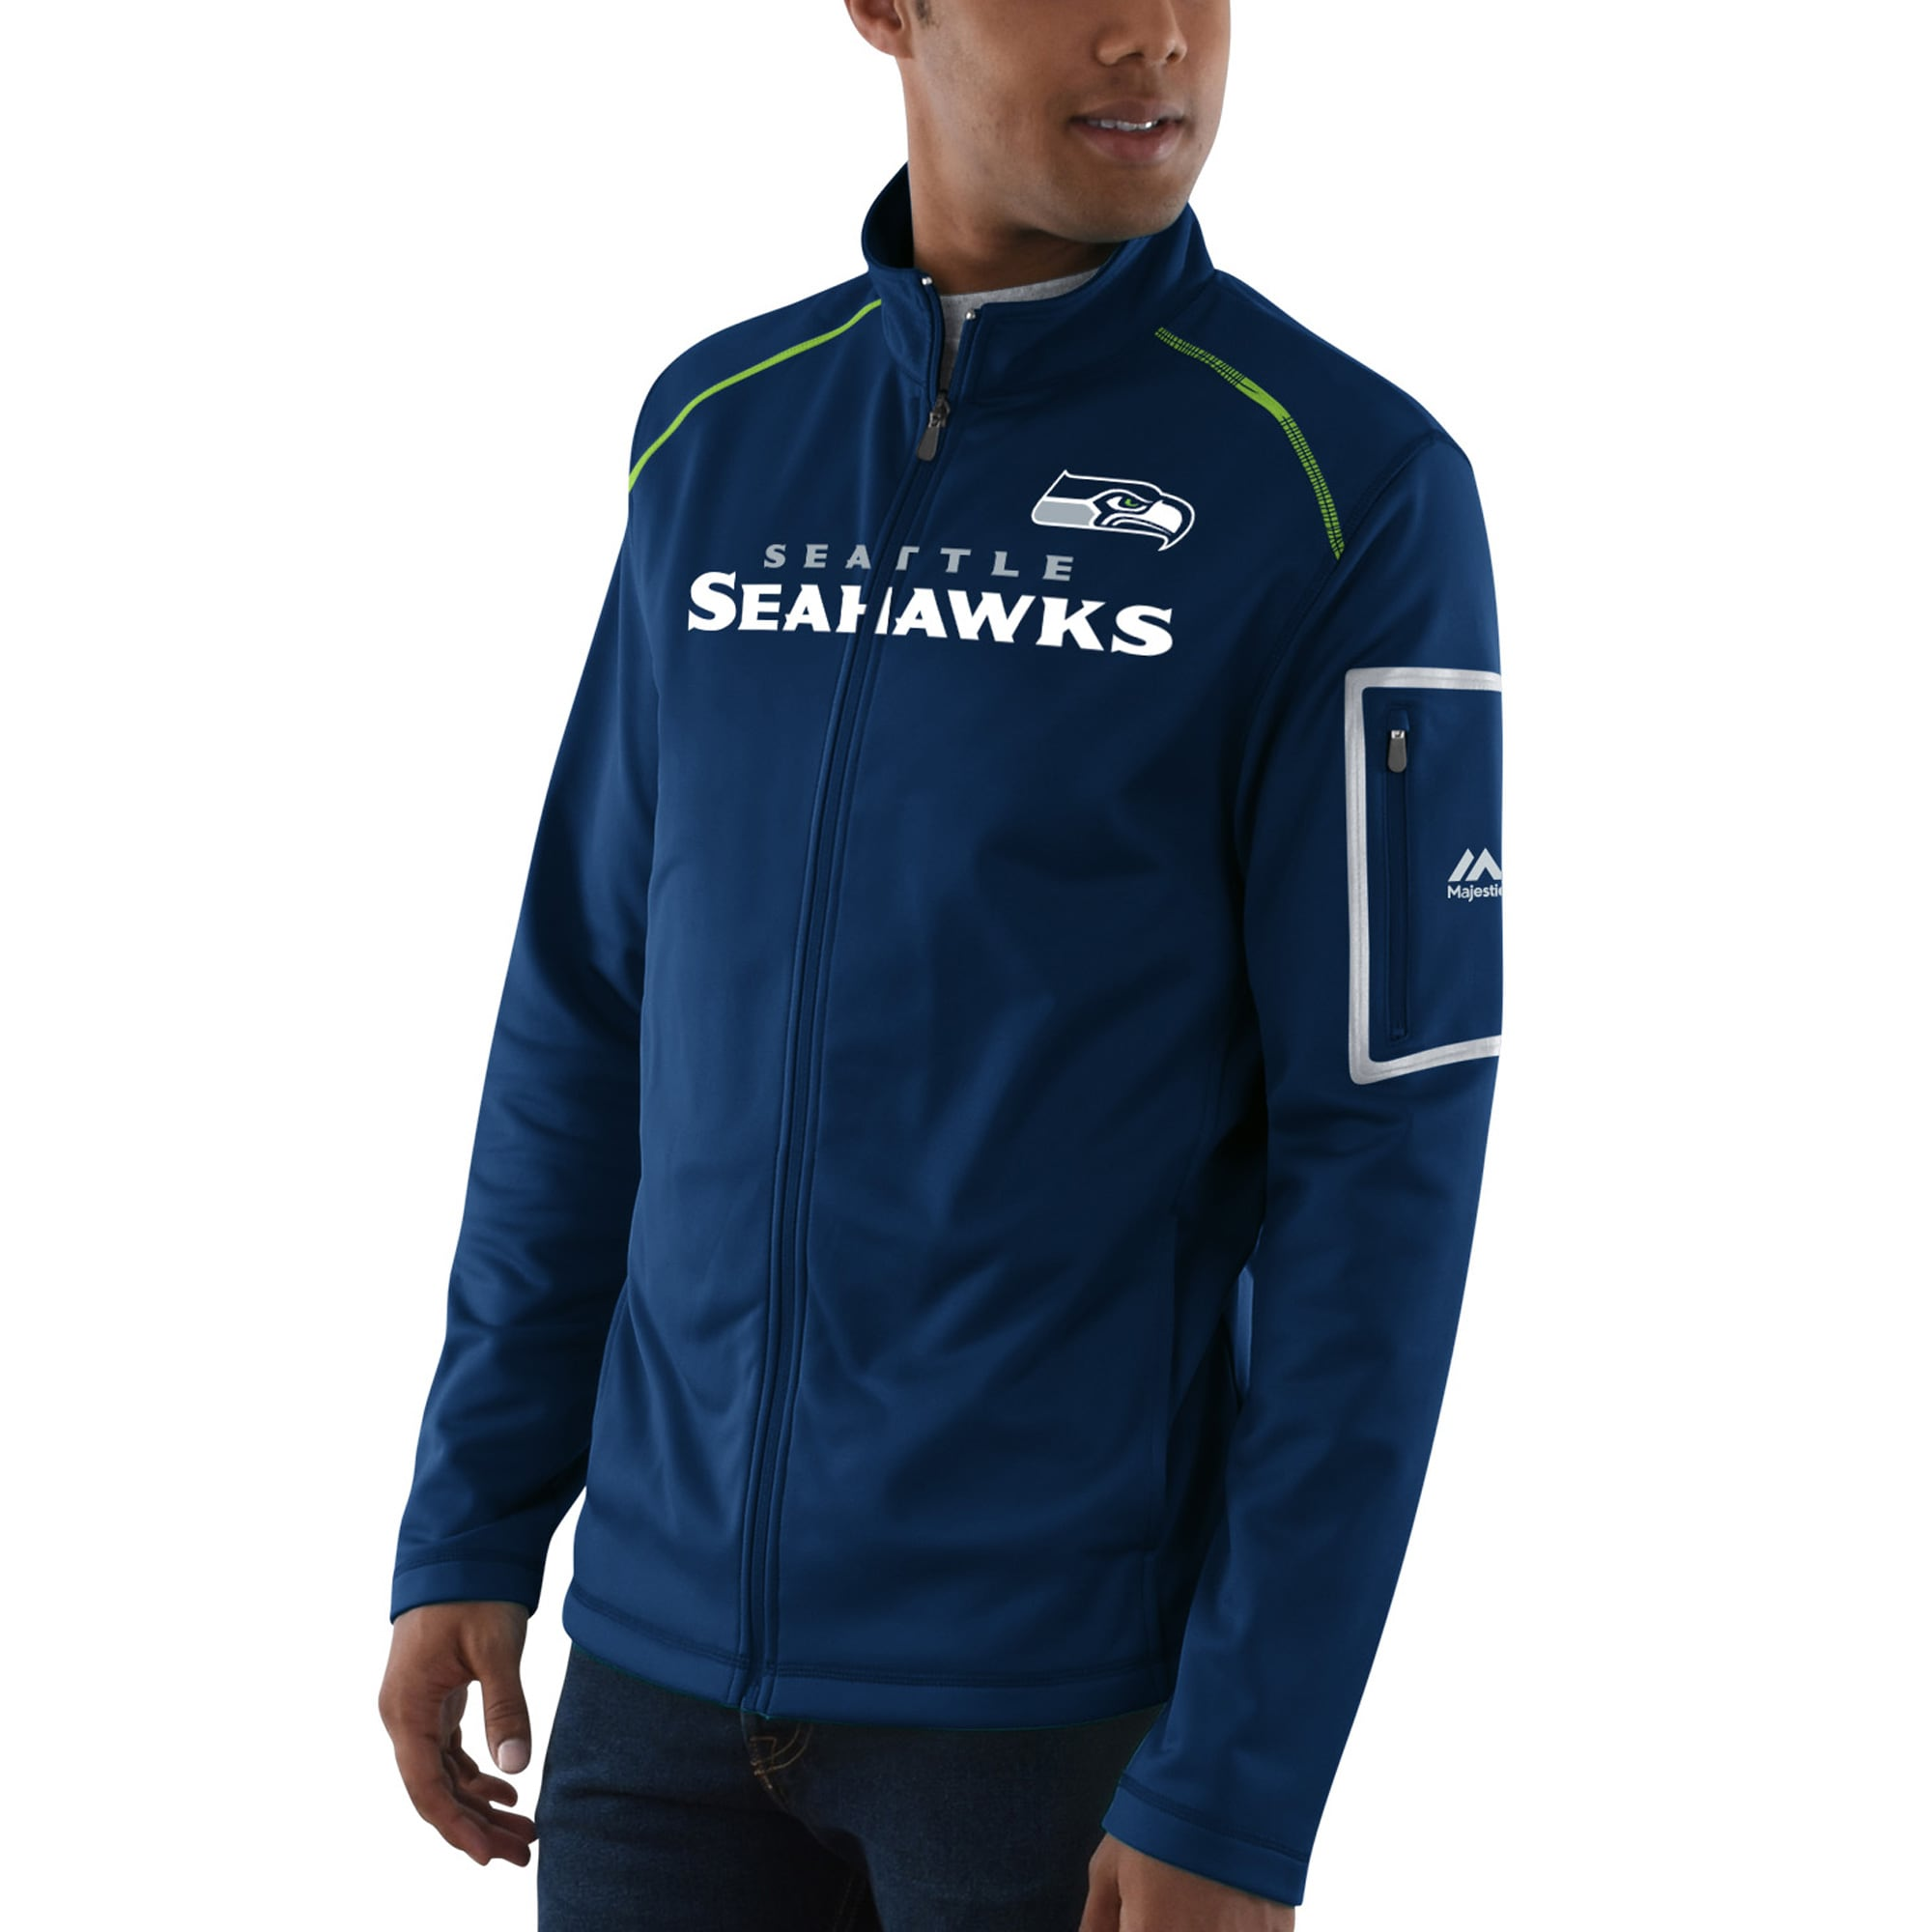 Seattle Seahawks Majestic Team Tech Track Jacket - College Navy